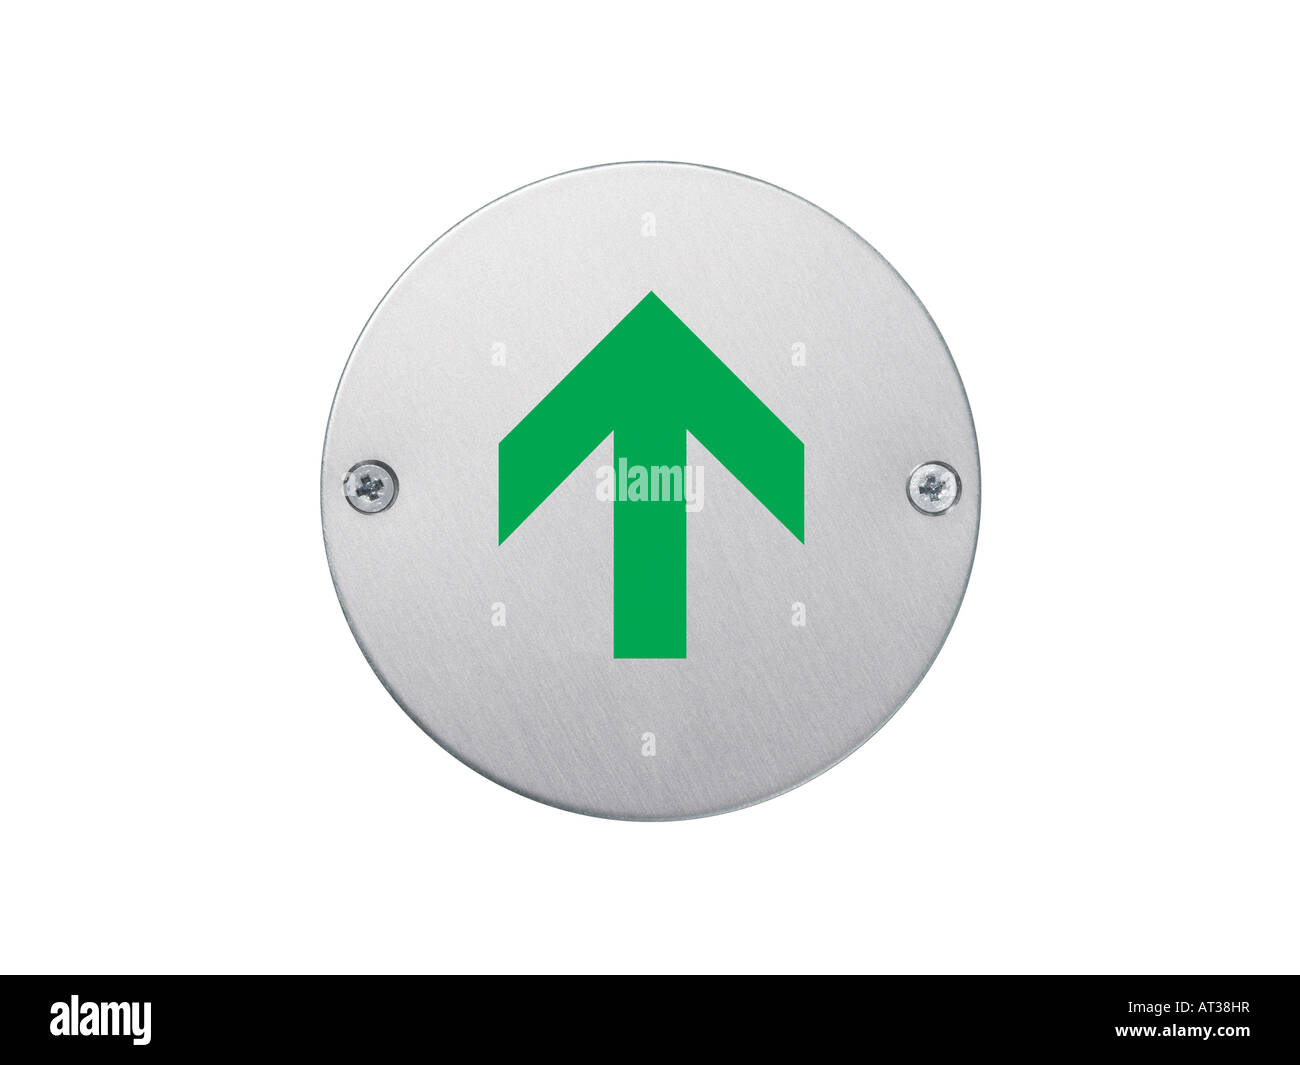 A green arrow sign pointing up - Stock Image